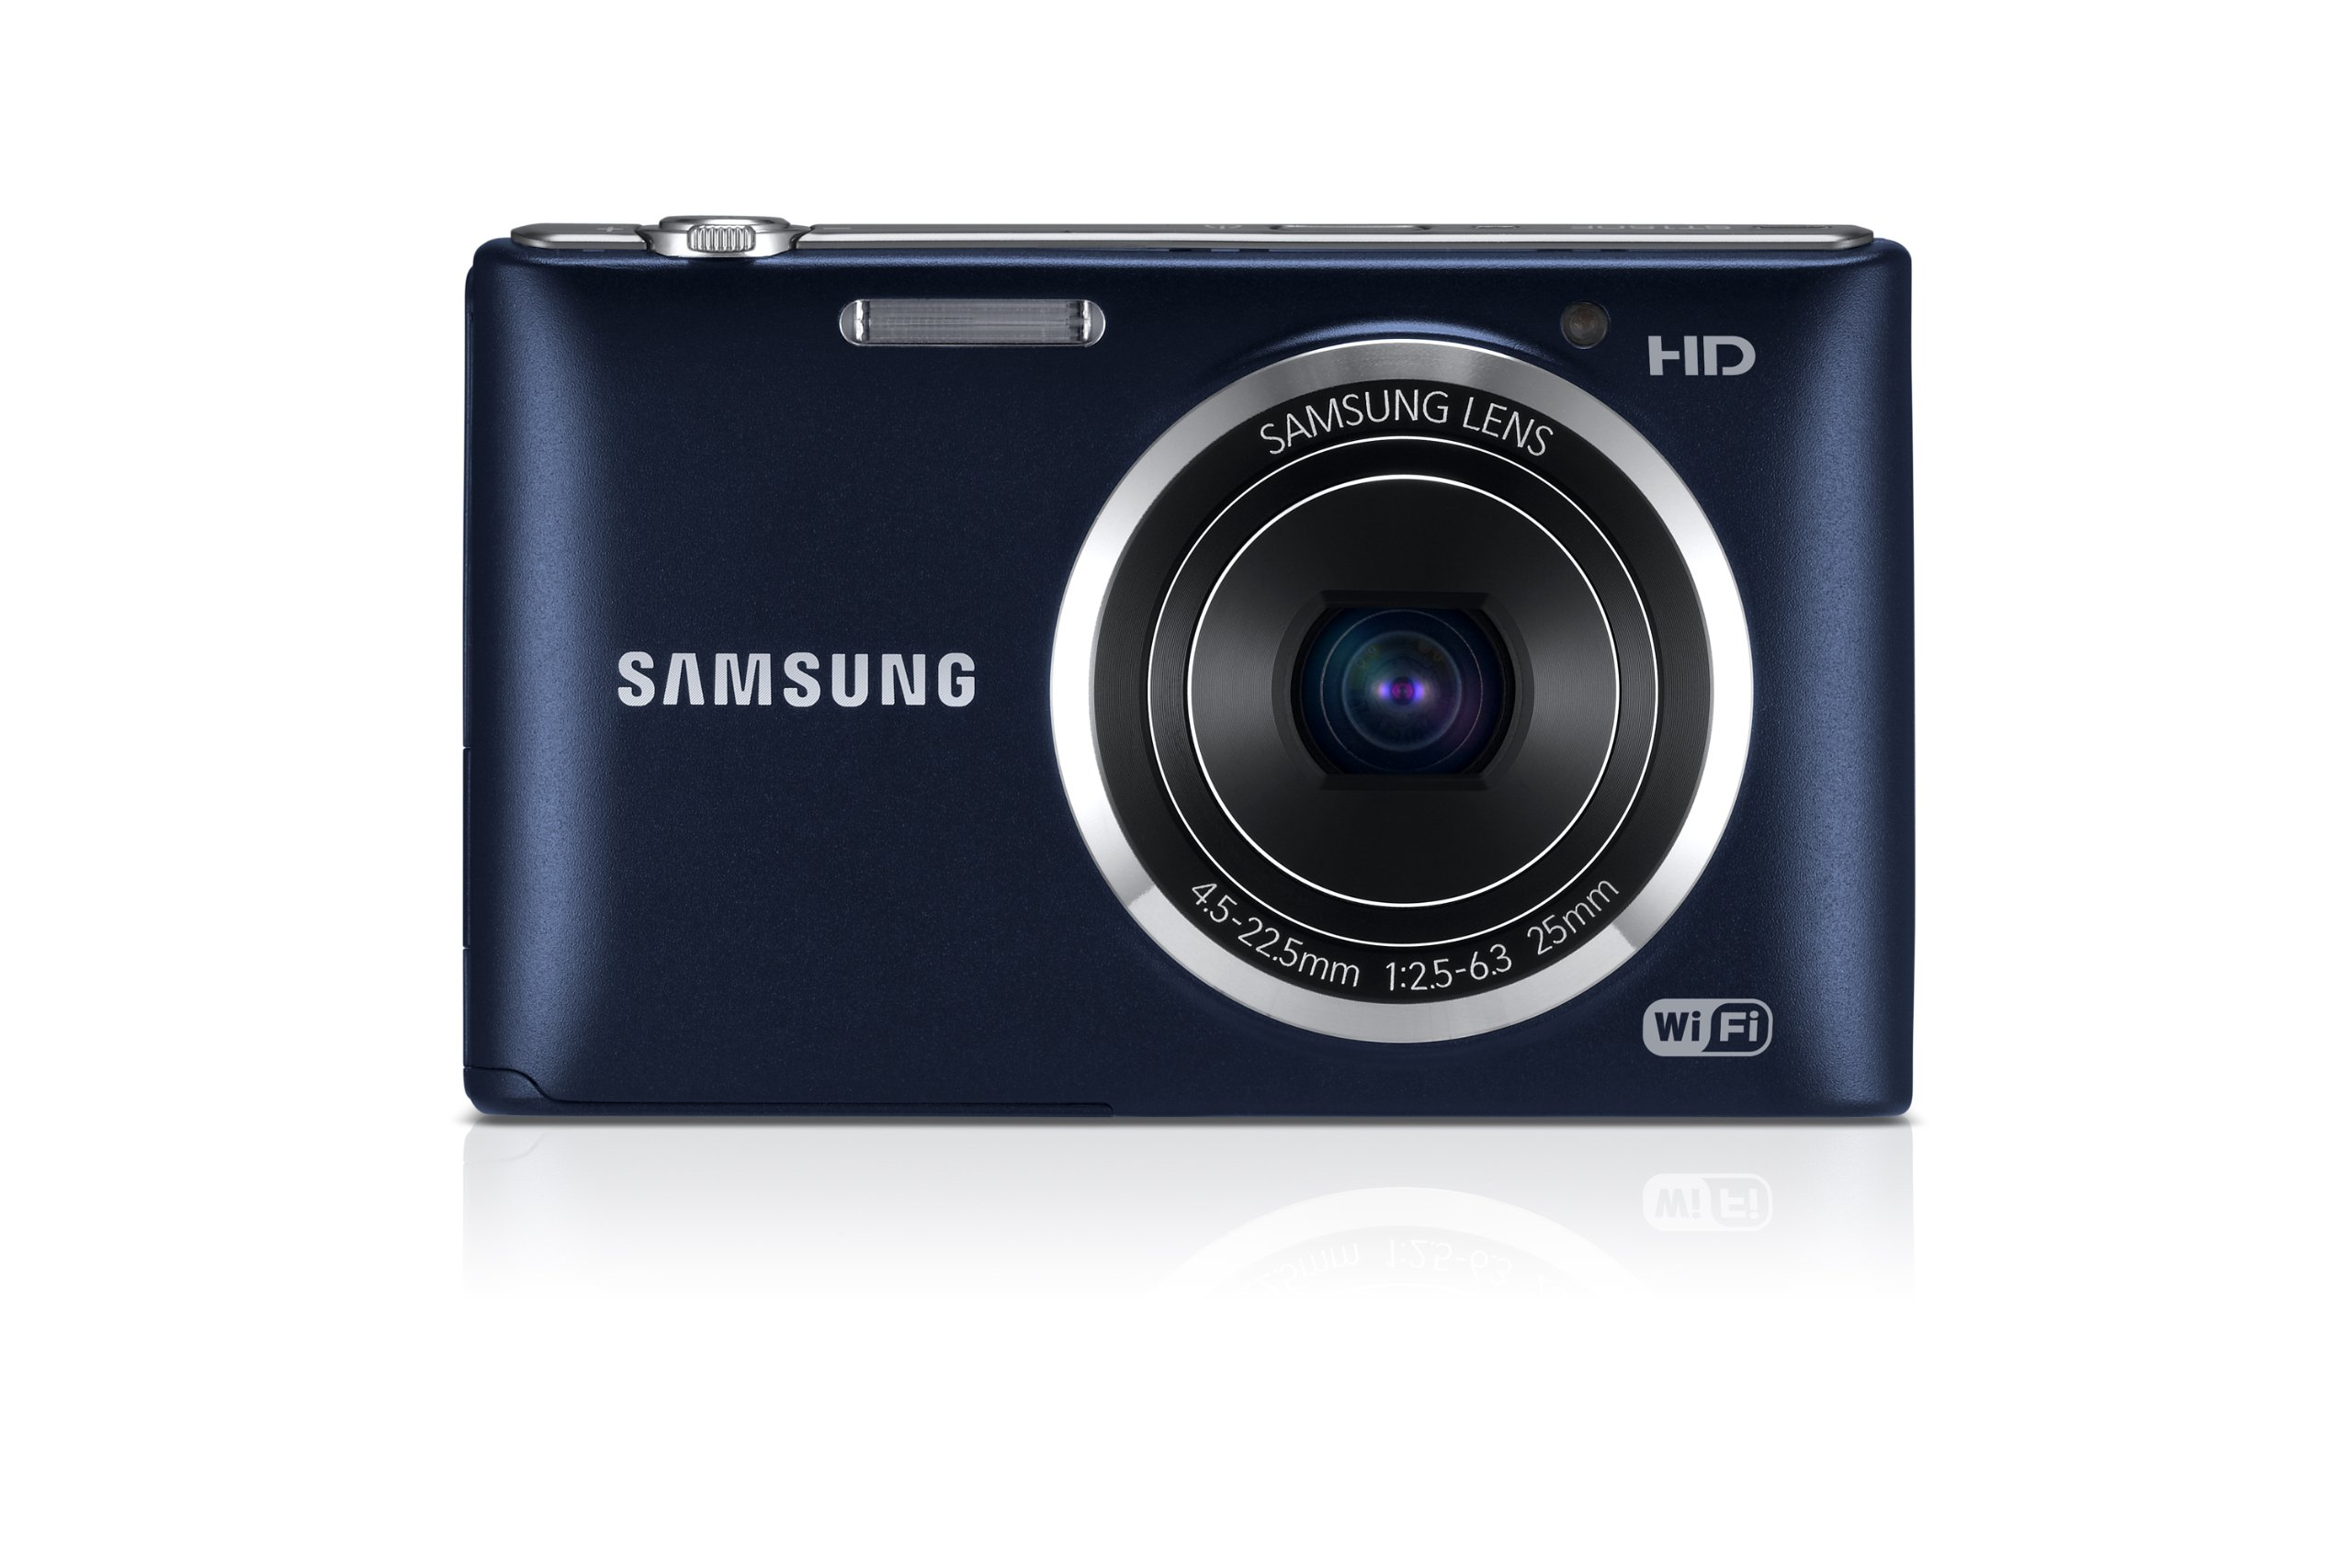 Samsung ST150F 16.2MP Smart WiFi Digital Camera with 5x Optical Zoom and 3.0'' LCD Screen (Black) by Samsung (Image #2)